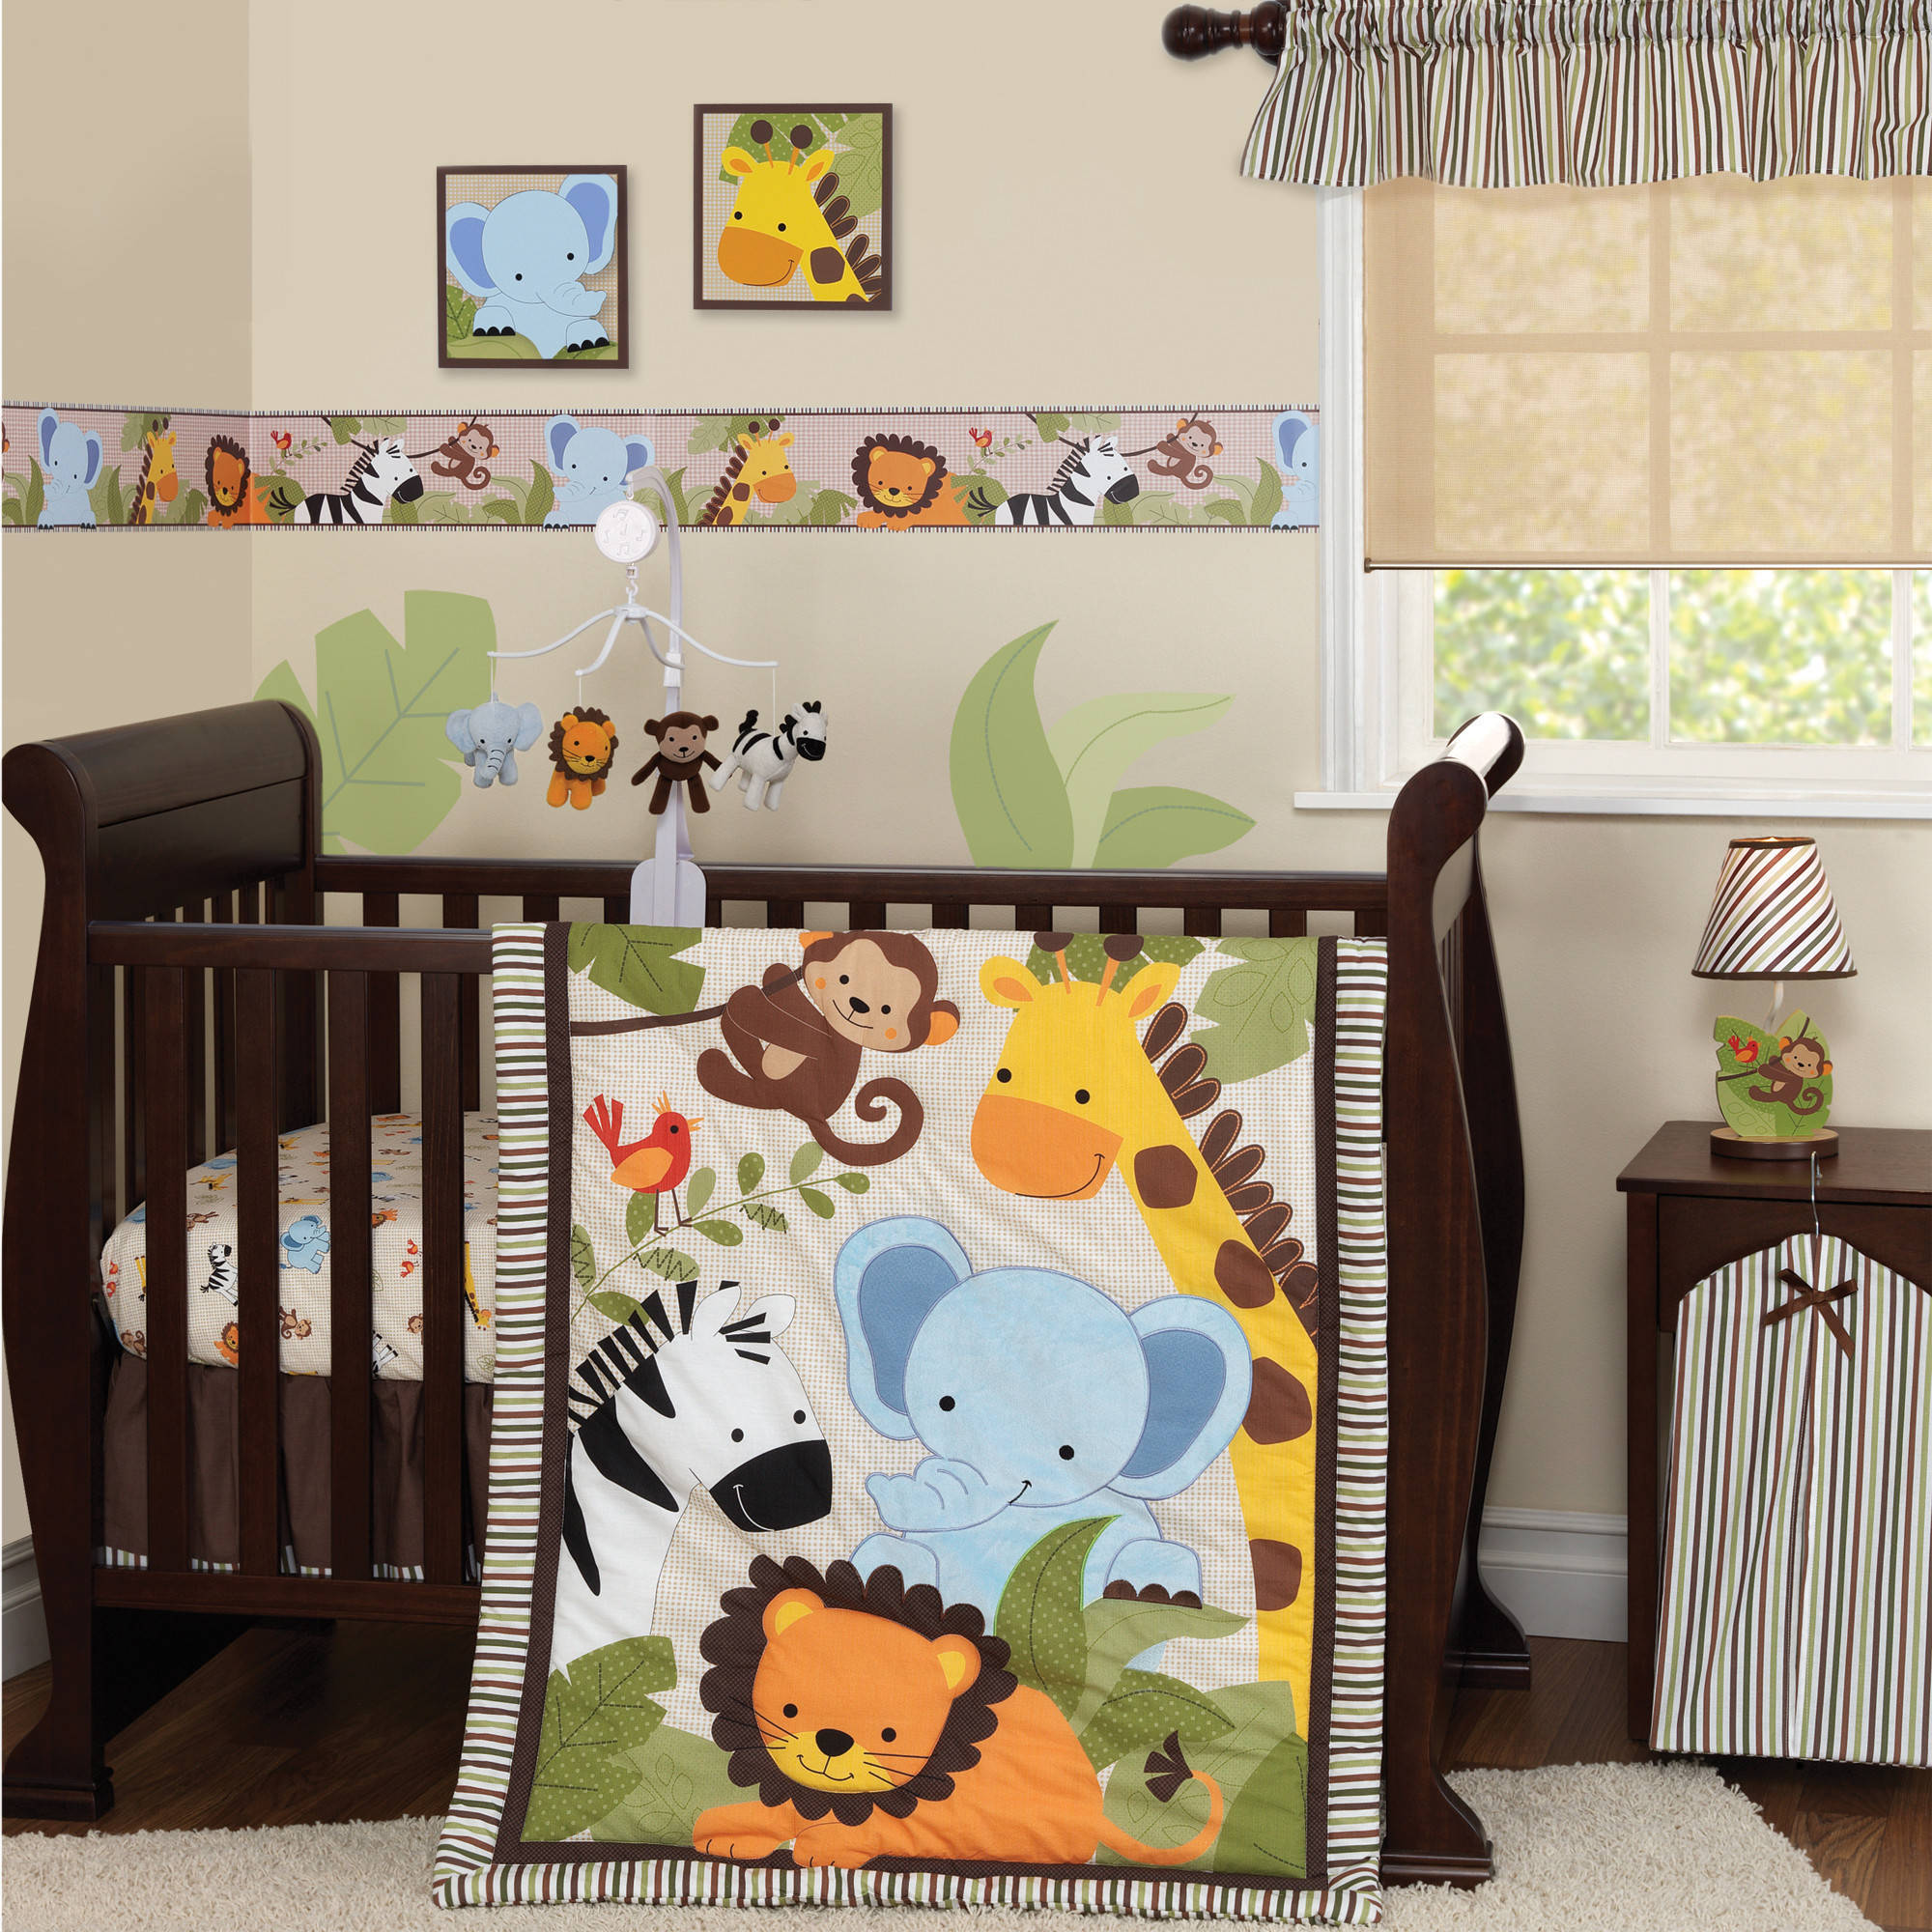 Crib size quilts for sale - Bedtime Originals By Lambs Ivy Jungle Buddies 3 Piece Crib Bedding Set Brown Walmart Com